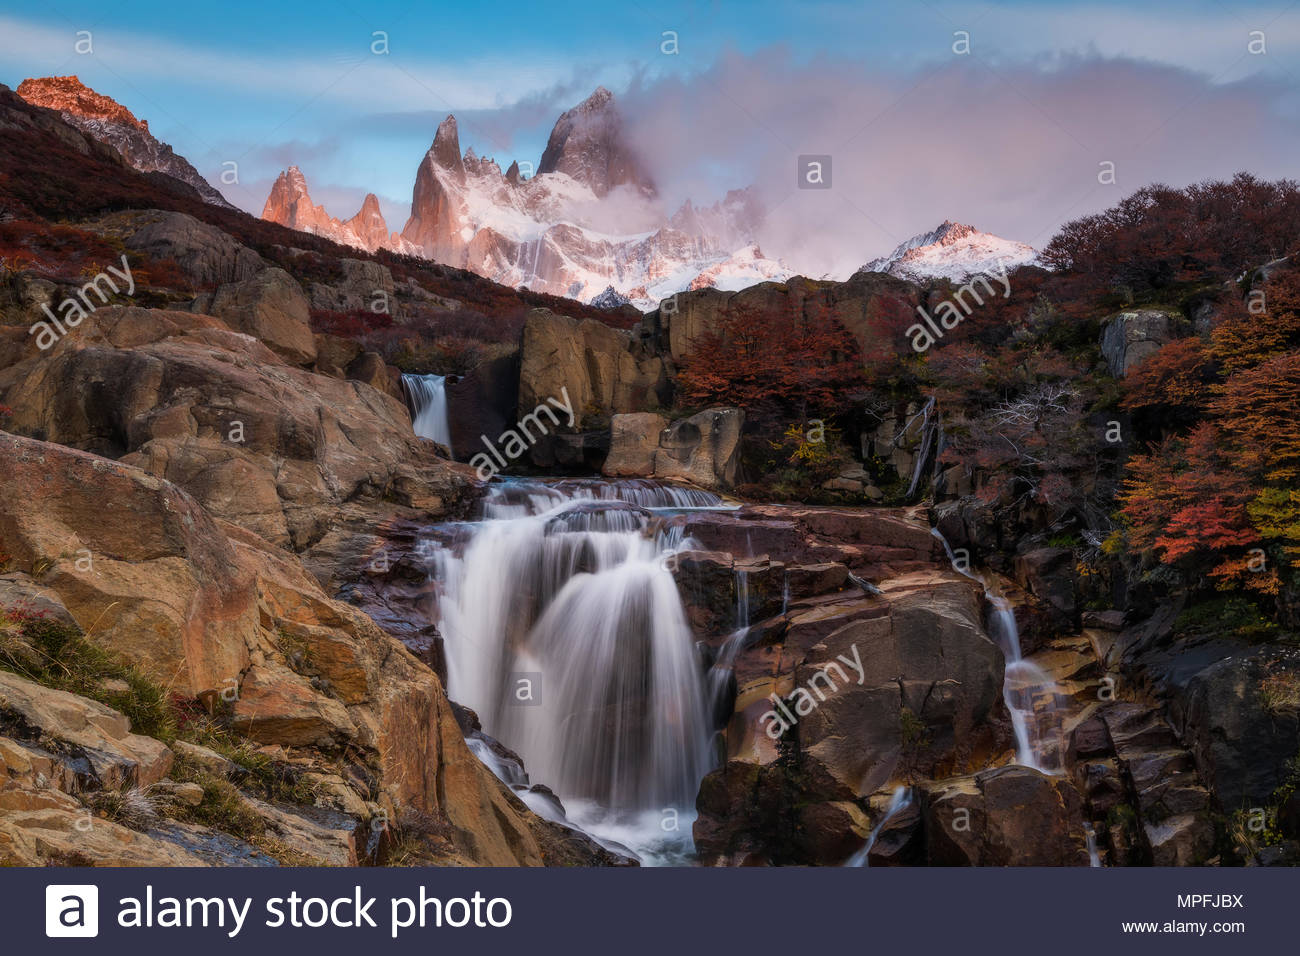 Beautiful view with waterfall and Fitz Roy mountain. Patagonia, Argentina. Stock Photo